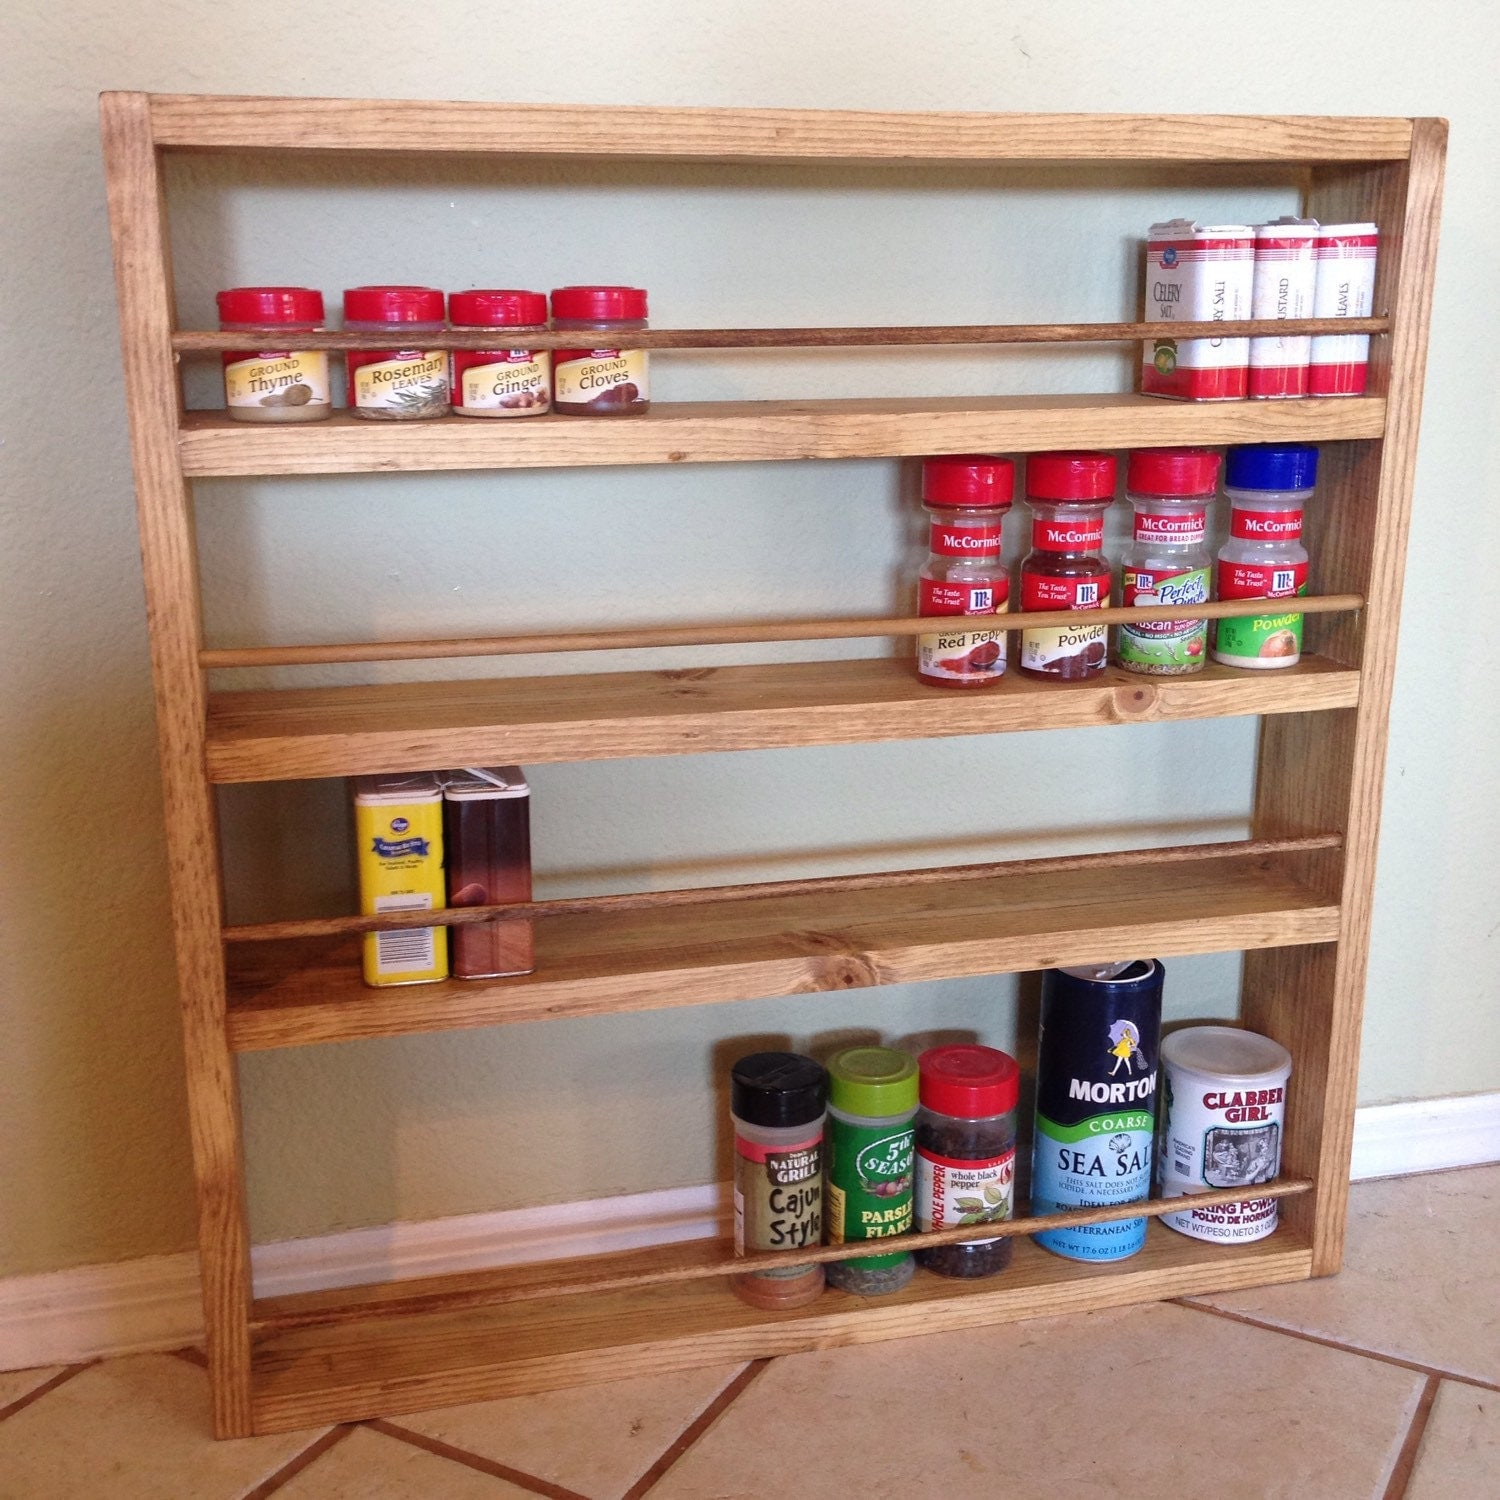 Handmade Spice Rack: 18 X 18 Rustic Spice Rack With Wooden Dowels By Nidify On Etsy